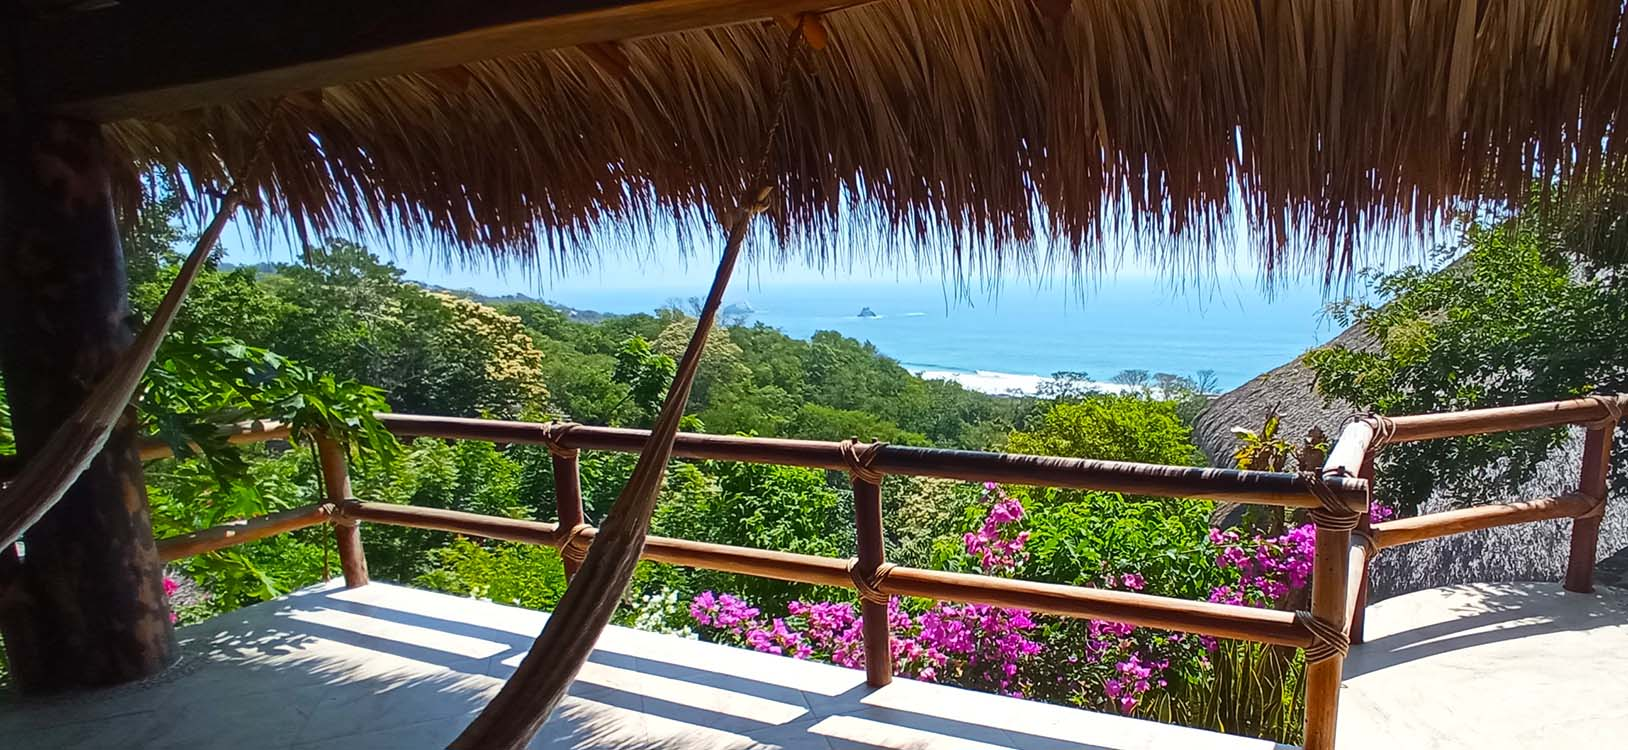 Zazil Retreat ist the best hotel in San Agustinillo / Mazunte Oaxaca Mexco, and offers a fantastic panoramic ocean view